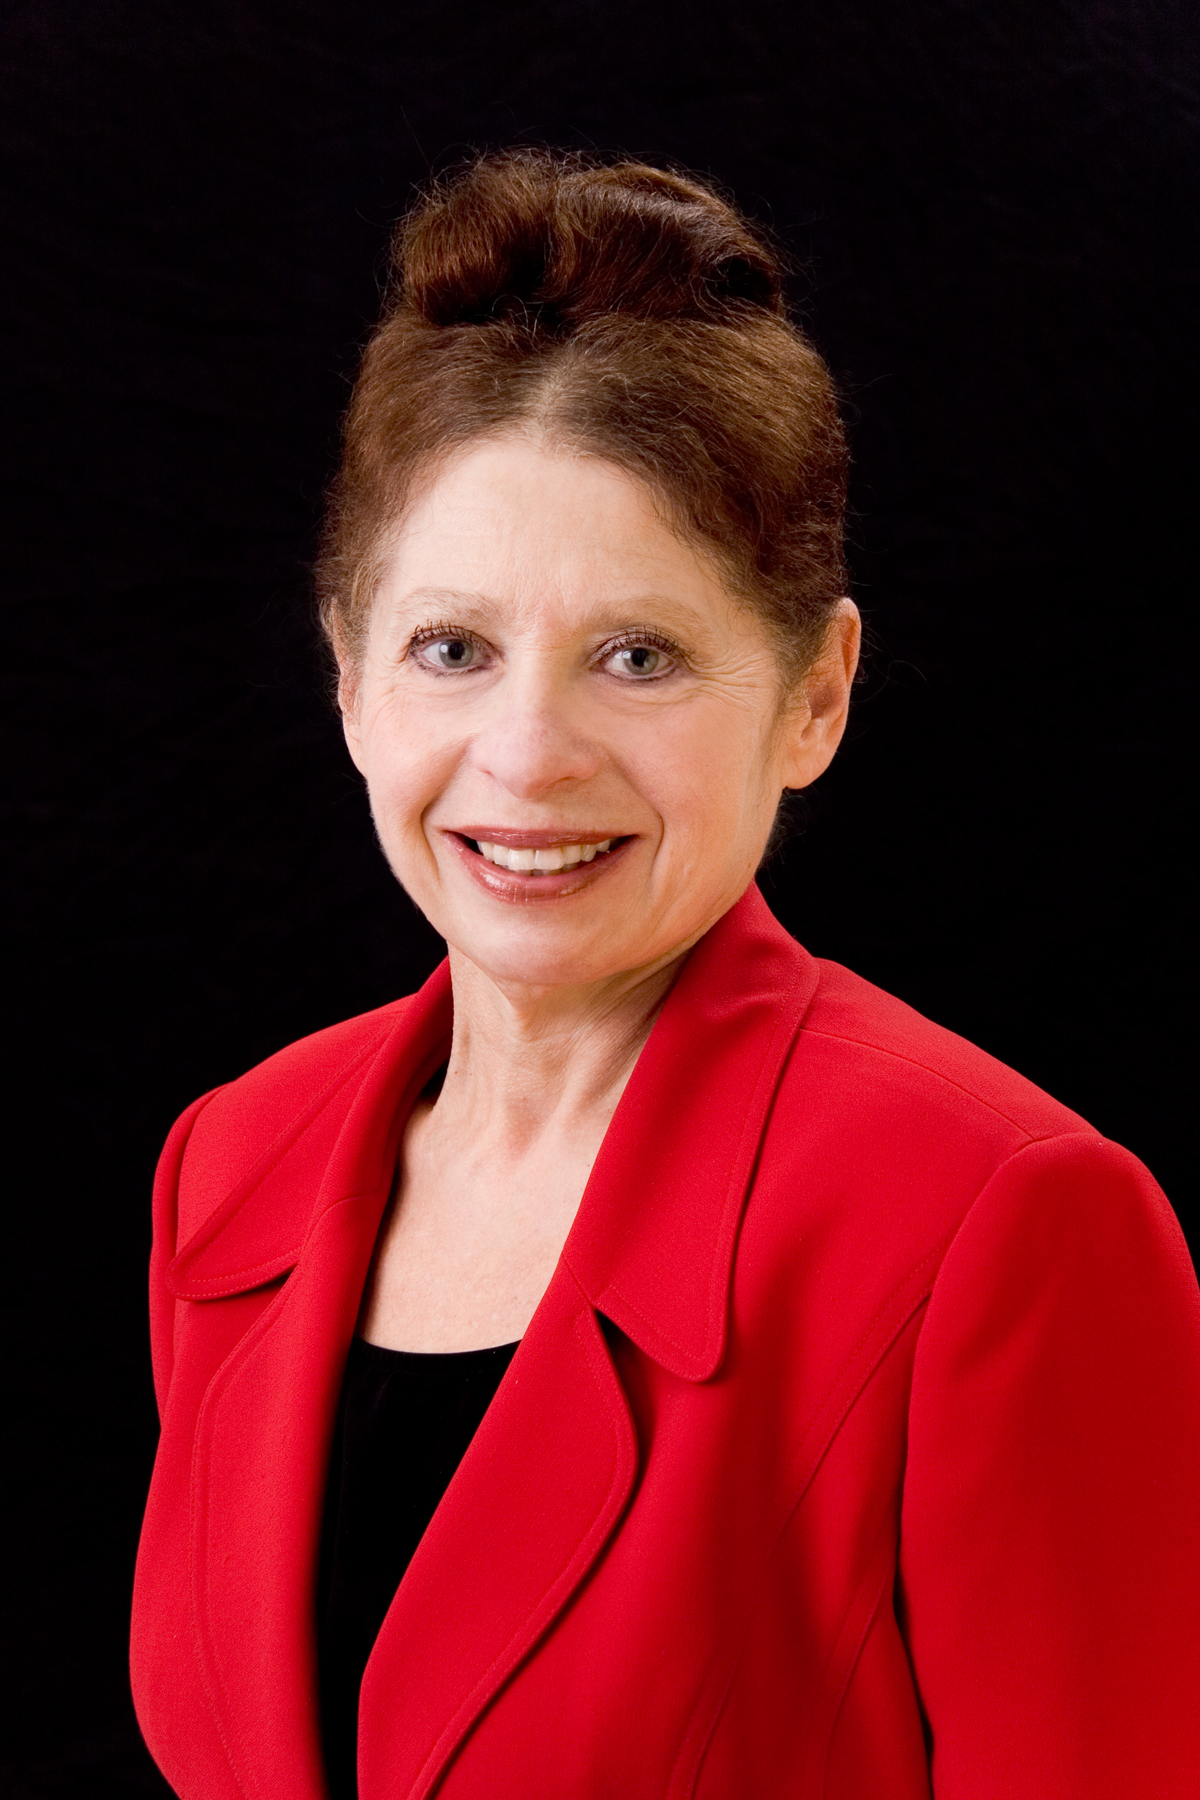 Sharon Sholzberg-Gray